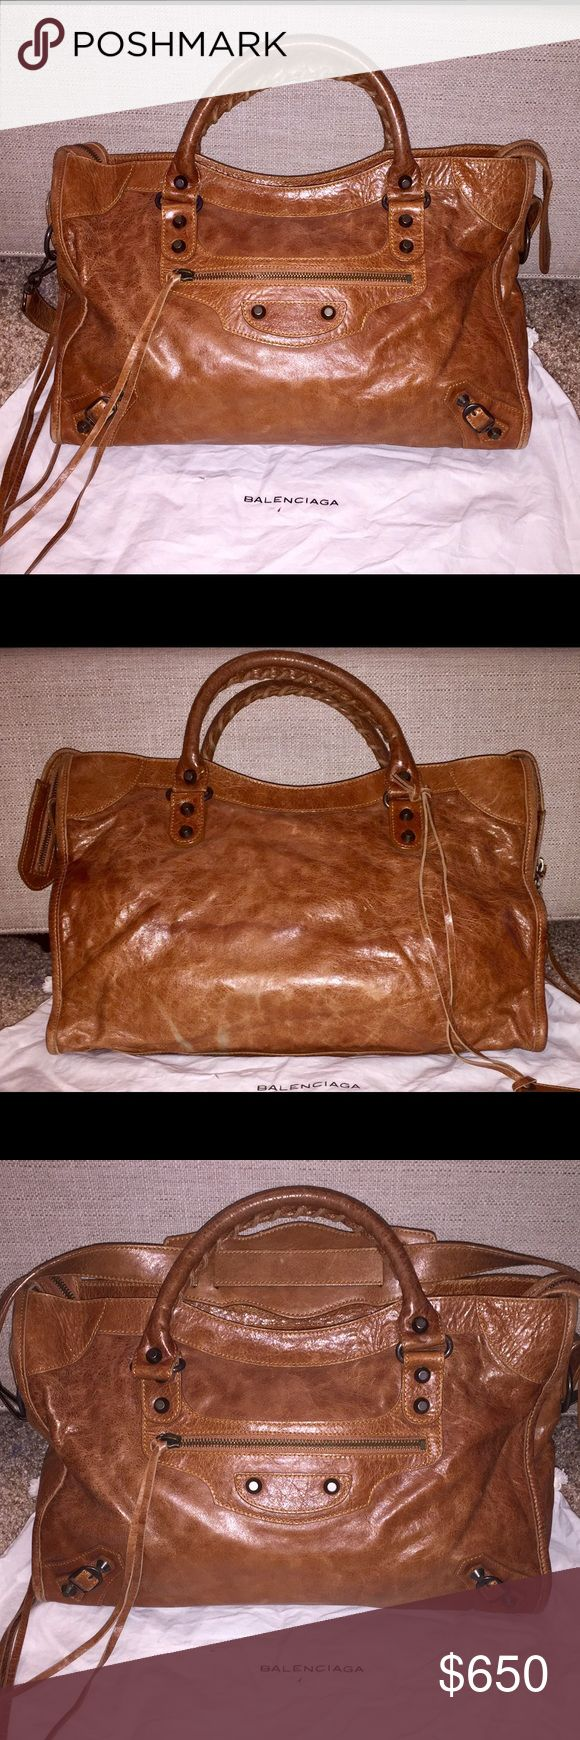 Balenciaga Classic City - 2009 Automne Gorgeous 2009 Balenciaga Classic City. Beautiful shade of caramel (automne). I don't have the opportunity to switch out my purses as often as I'd like, so this baby has been stored in its dust bag waiting for some love. Don't let this get away for a great bargain! I also have the matching wallet!  Features:  Hand stitched handles Removable shoulder strap Top zip closure Aged brass hardware Leather tassel zipper pull Front zip pocket Interior zip pocket…